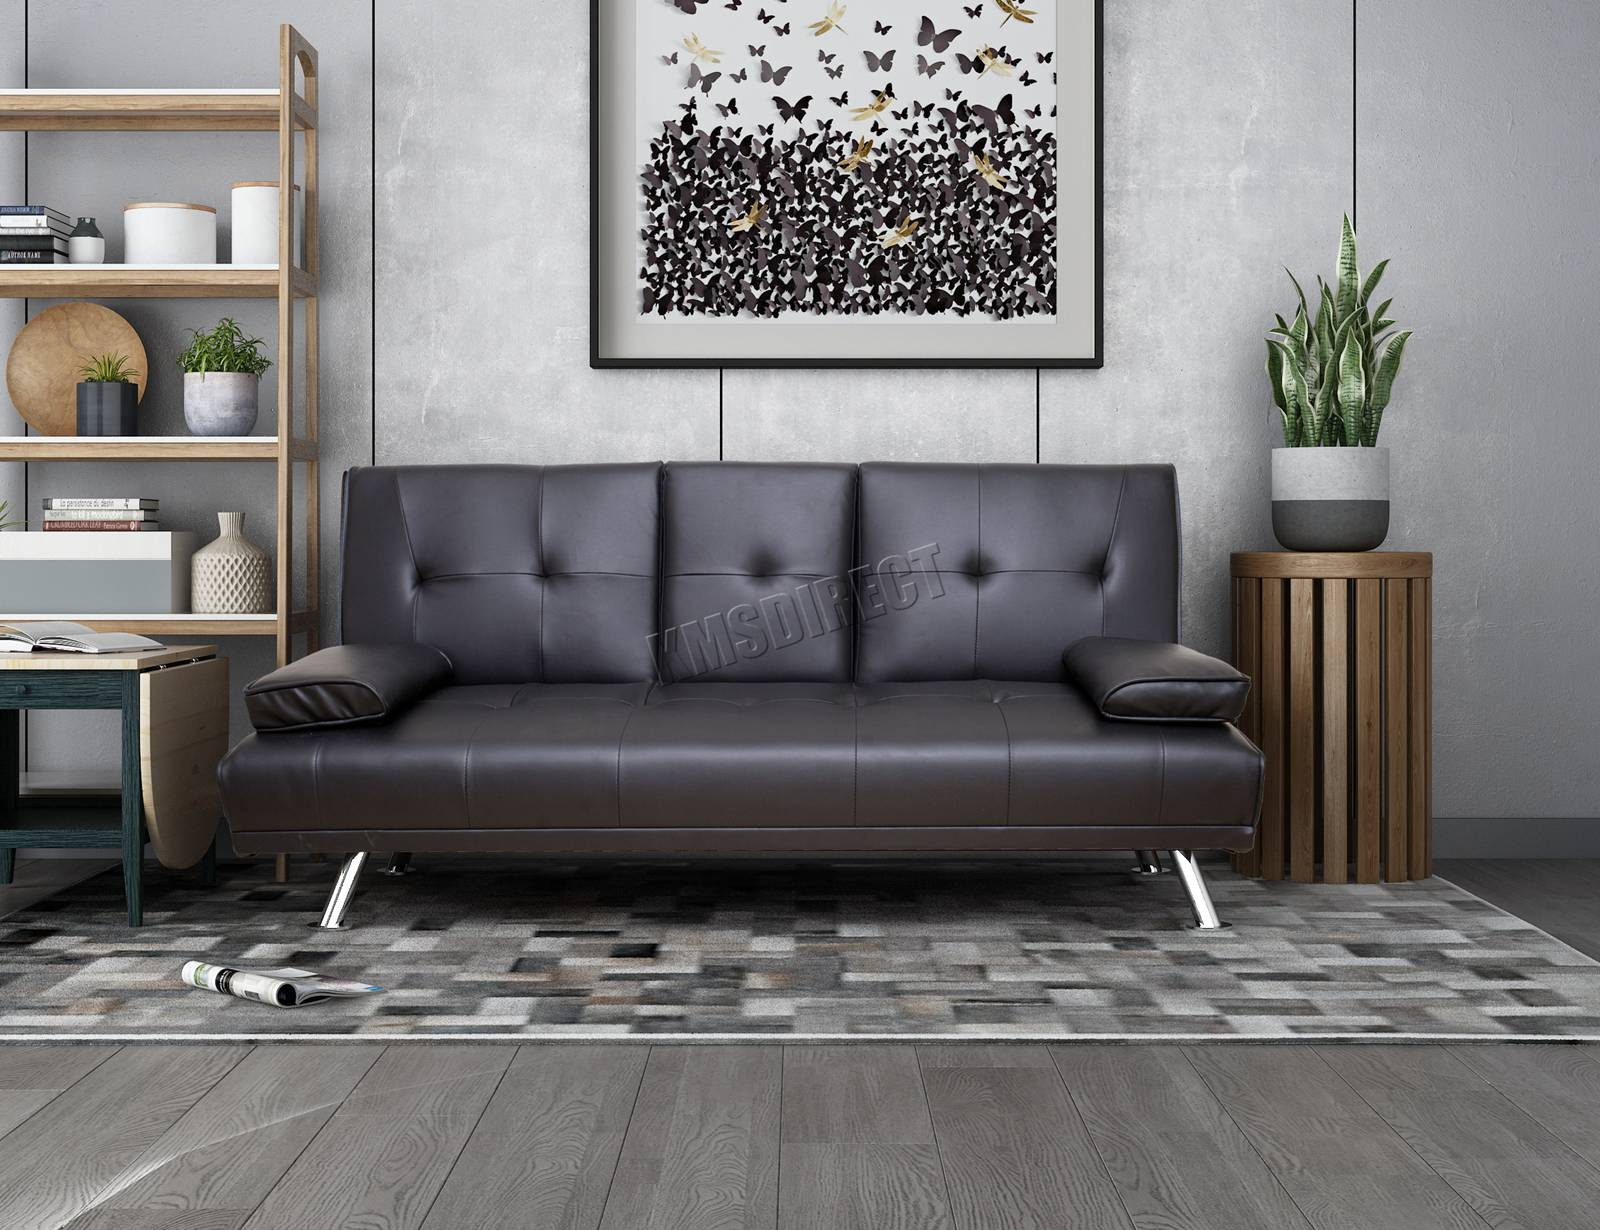 WestWood-Faux-Leather-Manhattan-Sofa-Bed-recliner-3-Seater-Modern-Luxury-Design thumbnail 14